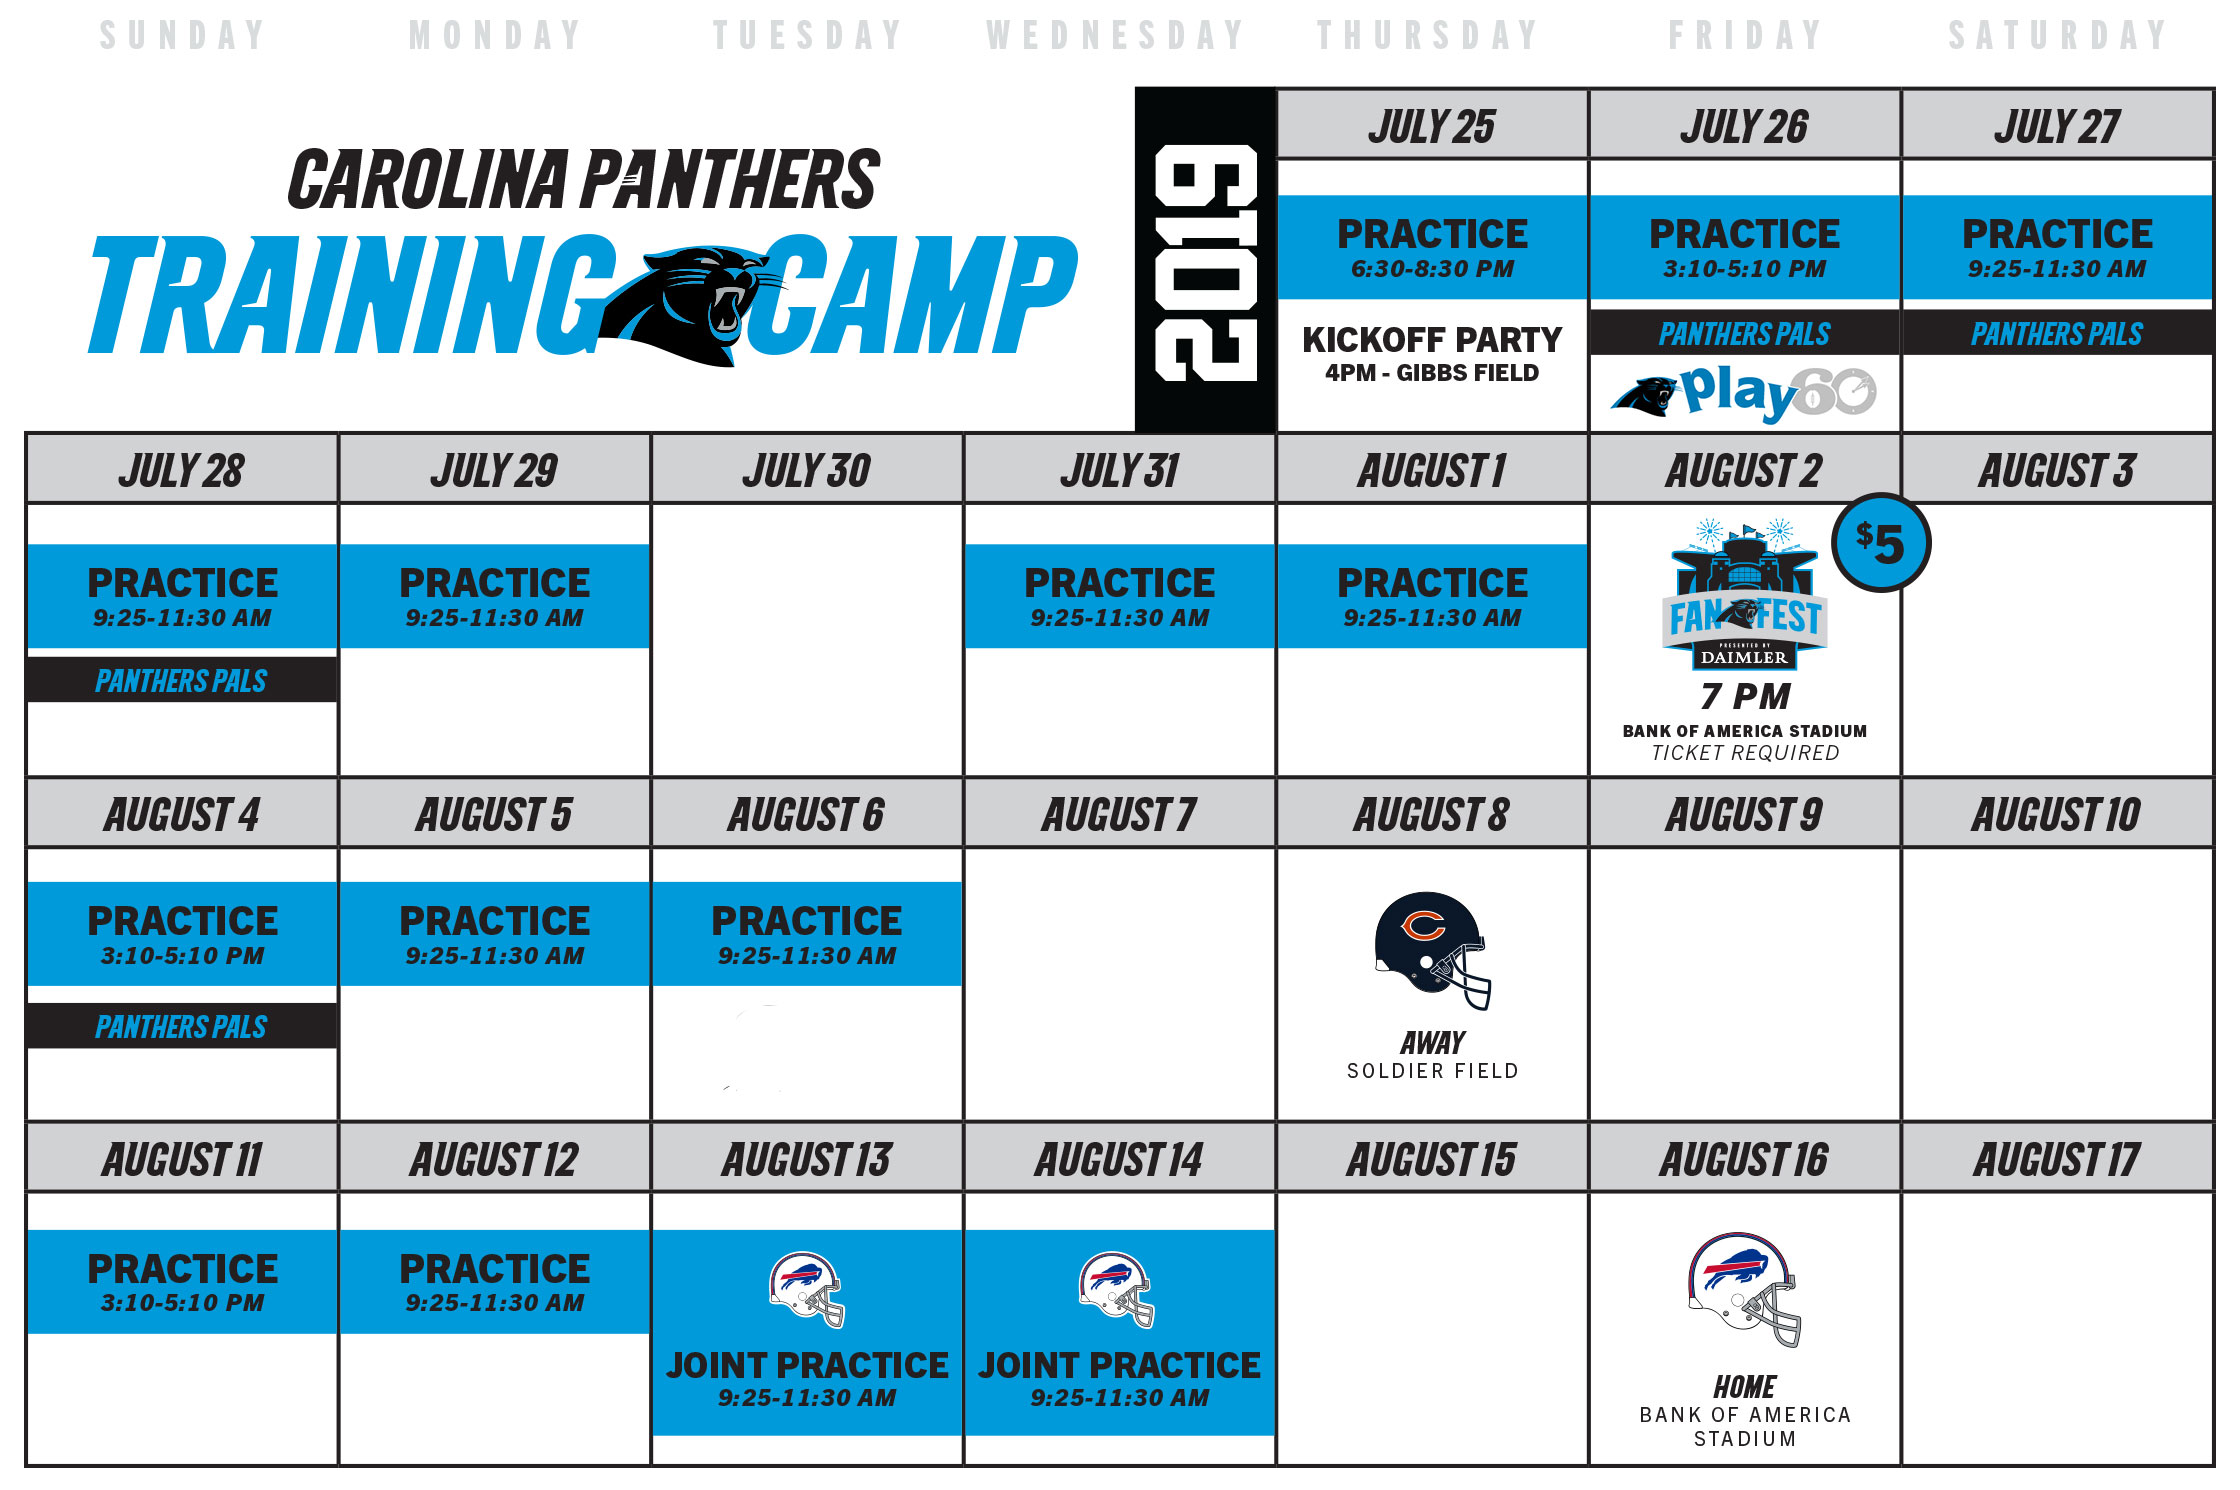 2019 Carolina Panthers training camp schedule.